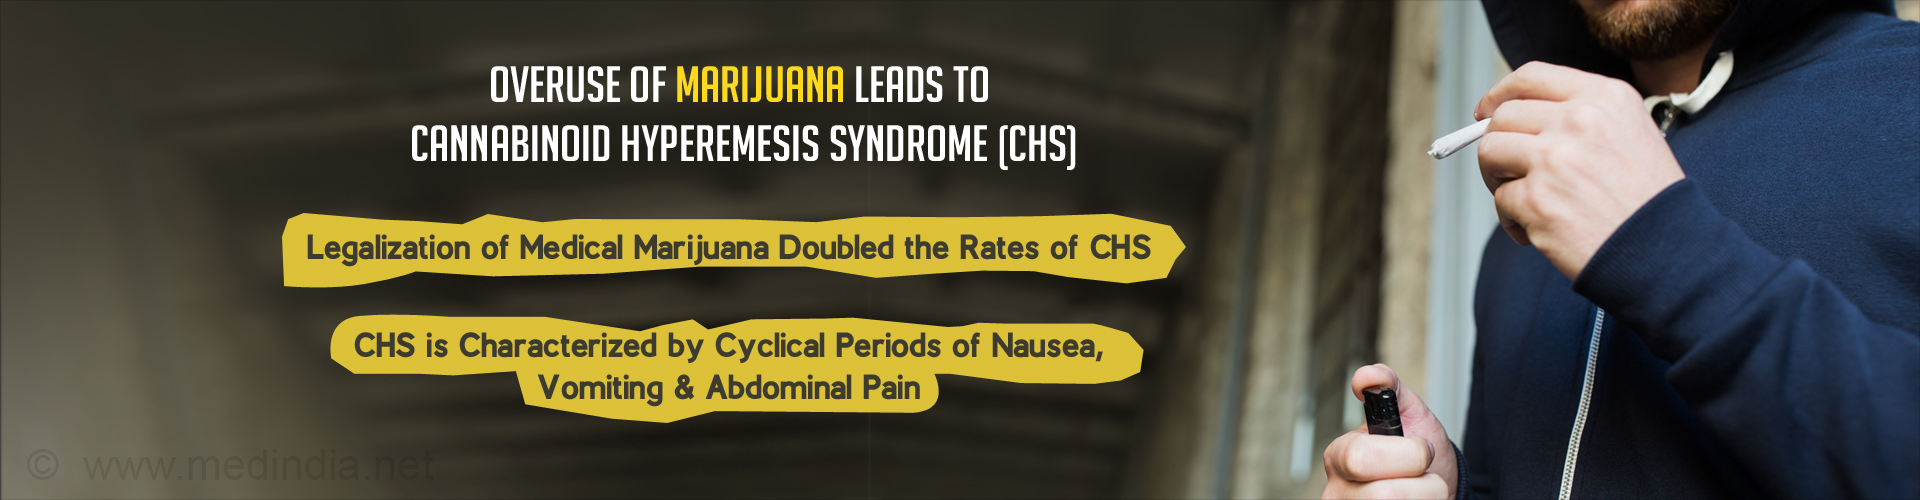 Overuse of Marijuana Leads to Cannabinoid Hyperemesis Syndrome (CHS)